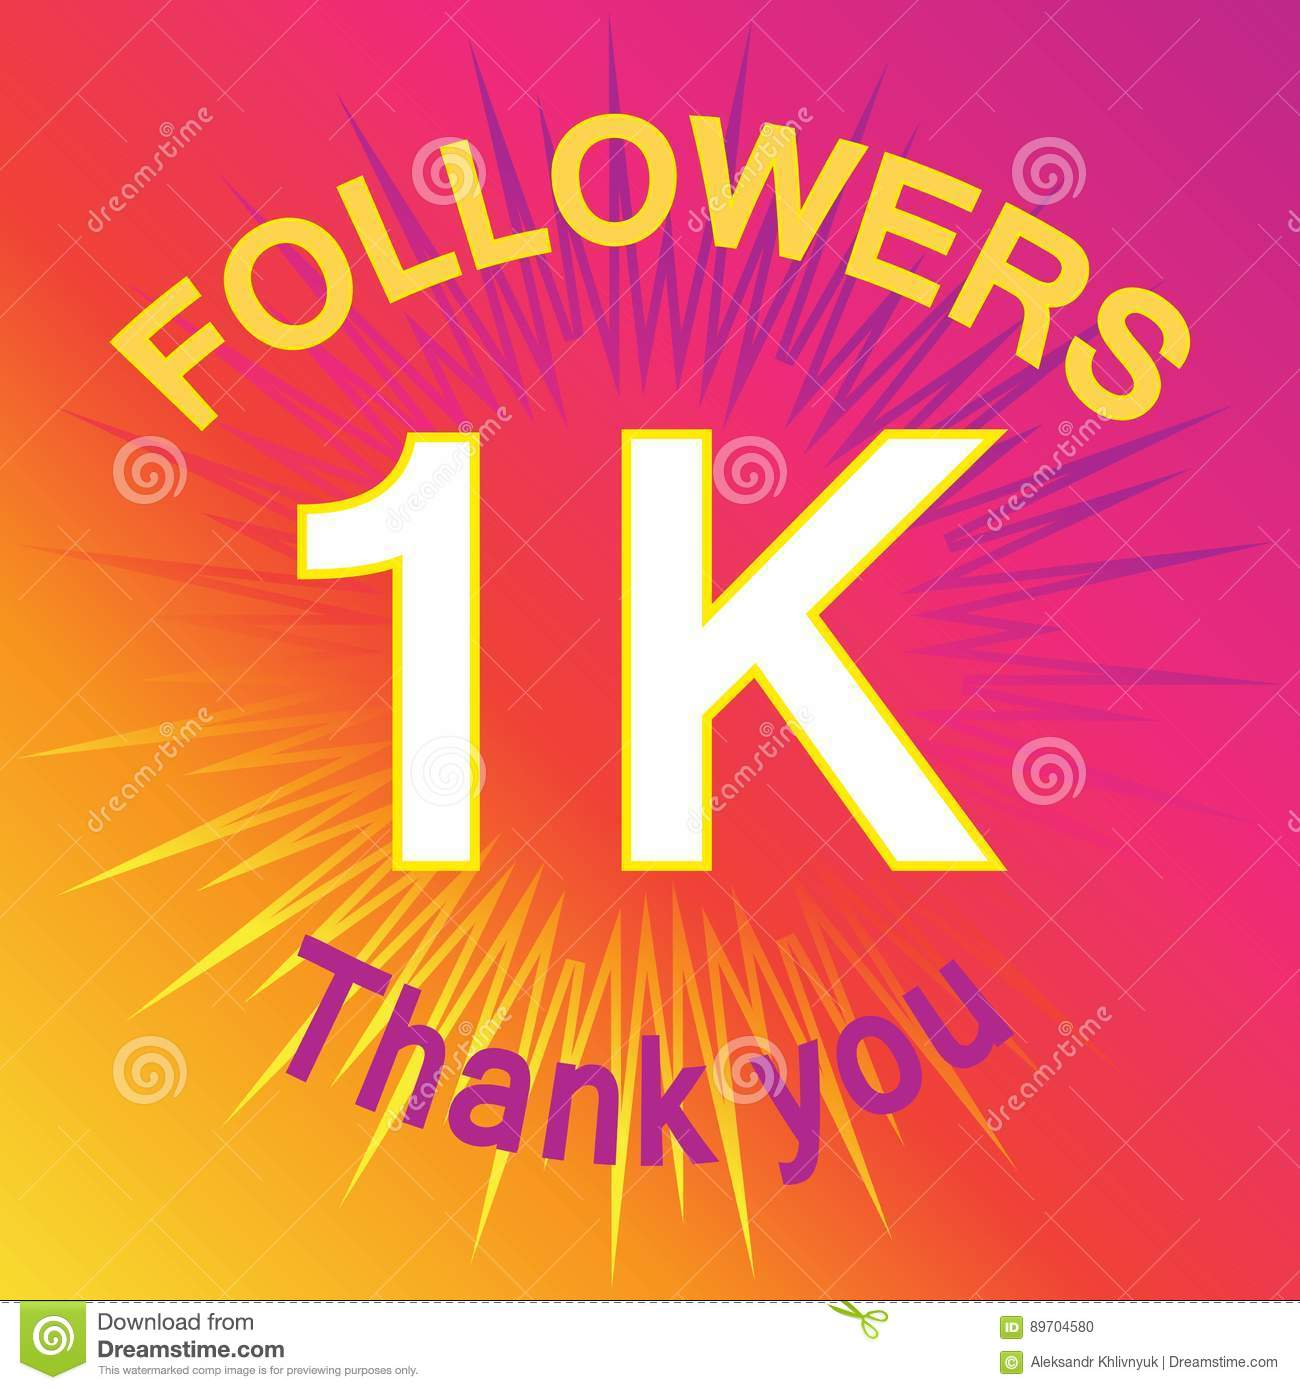 1k followers illustration with thank you stock illustration 1k followers illustration with thank you greeting hundred kristyandbryce Images